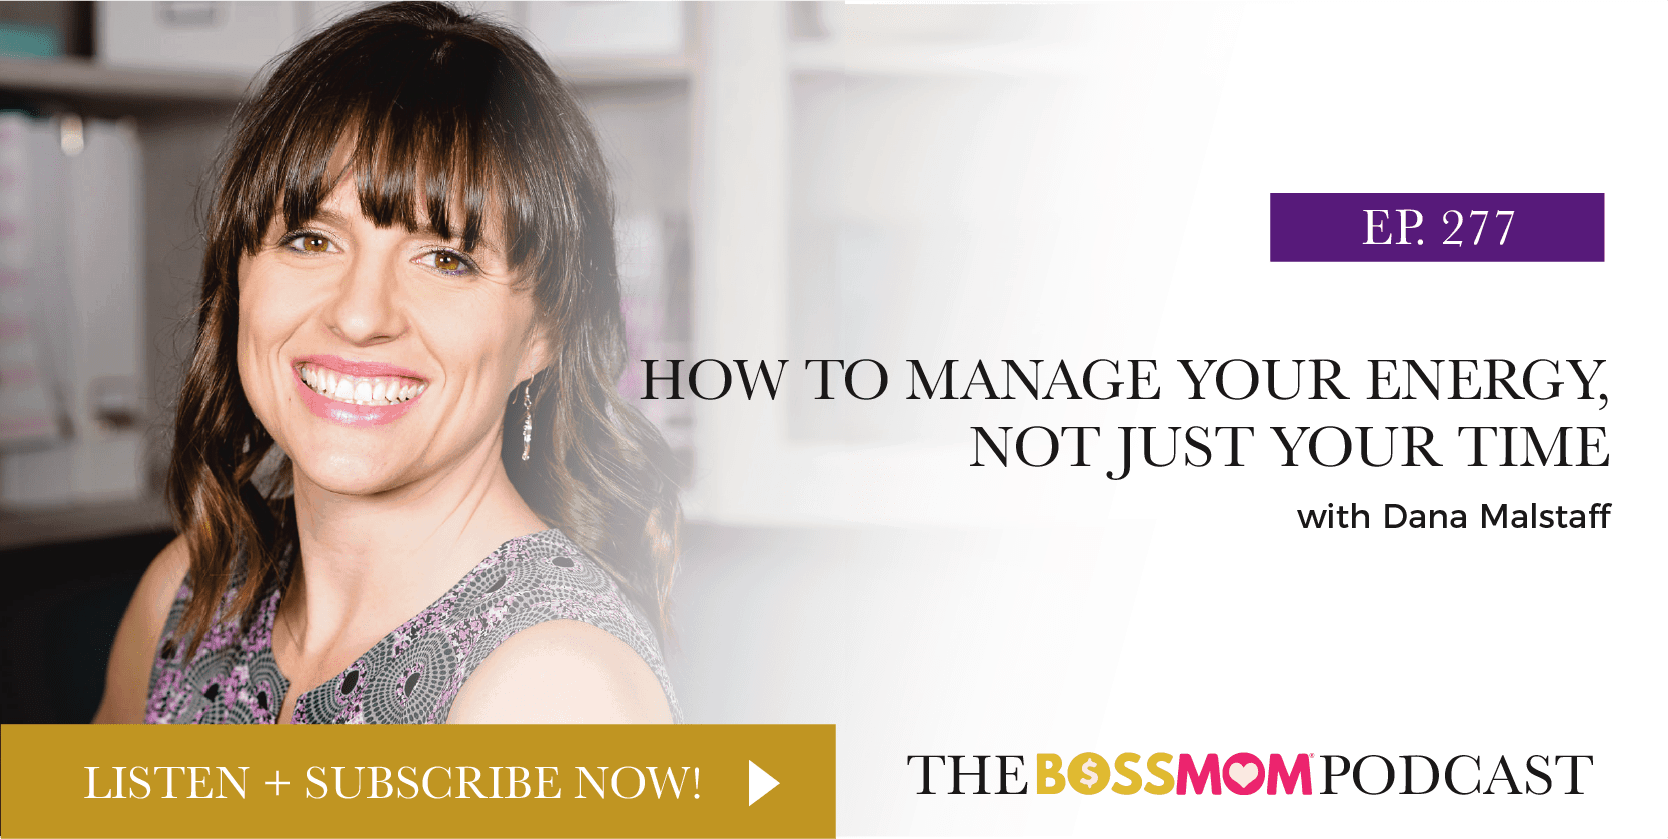 Episode 277: How to Manage Your Energy, Not Just Your Time